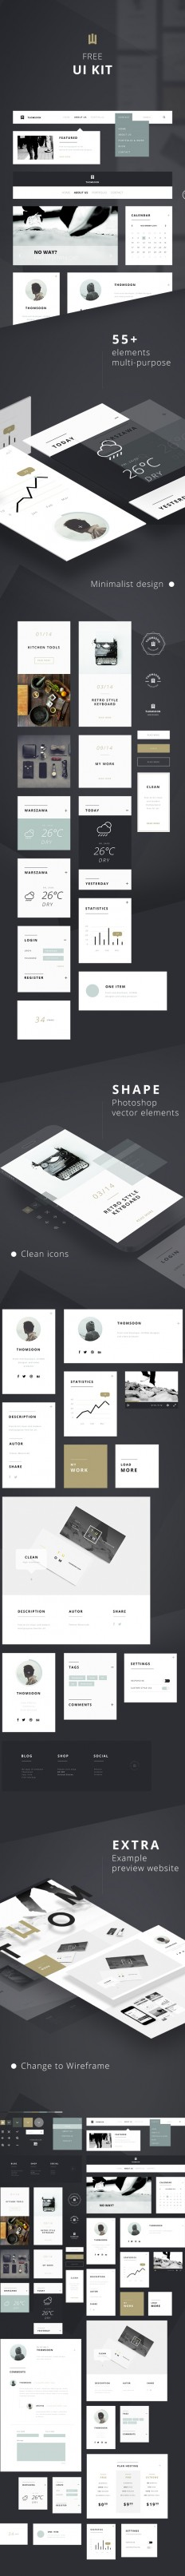 55+ Elements FREE UI KIT | Clean white [DOWNLOAD] on